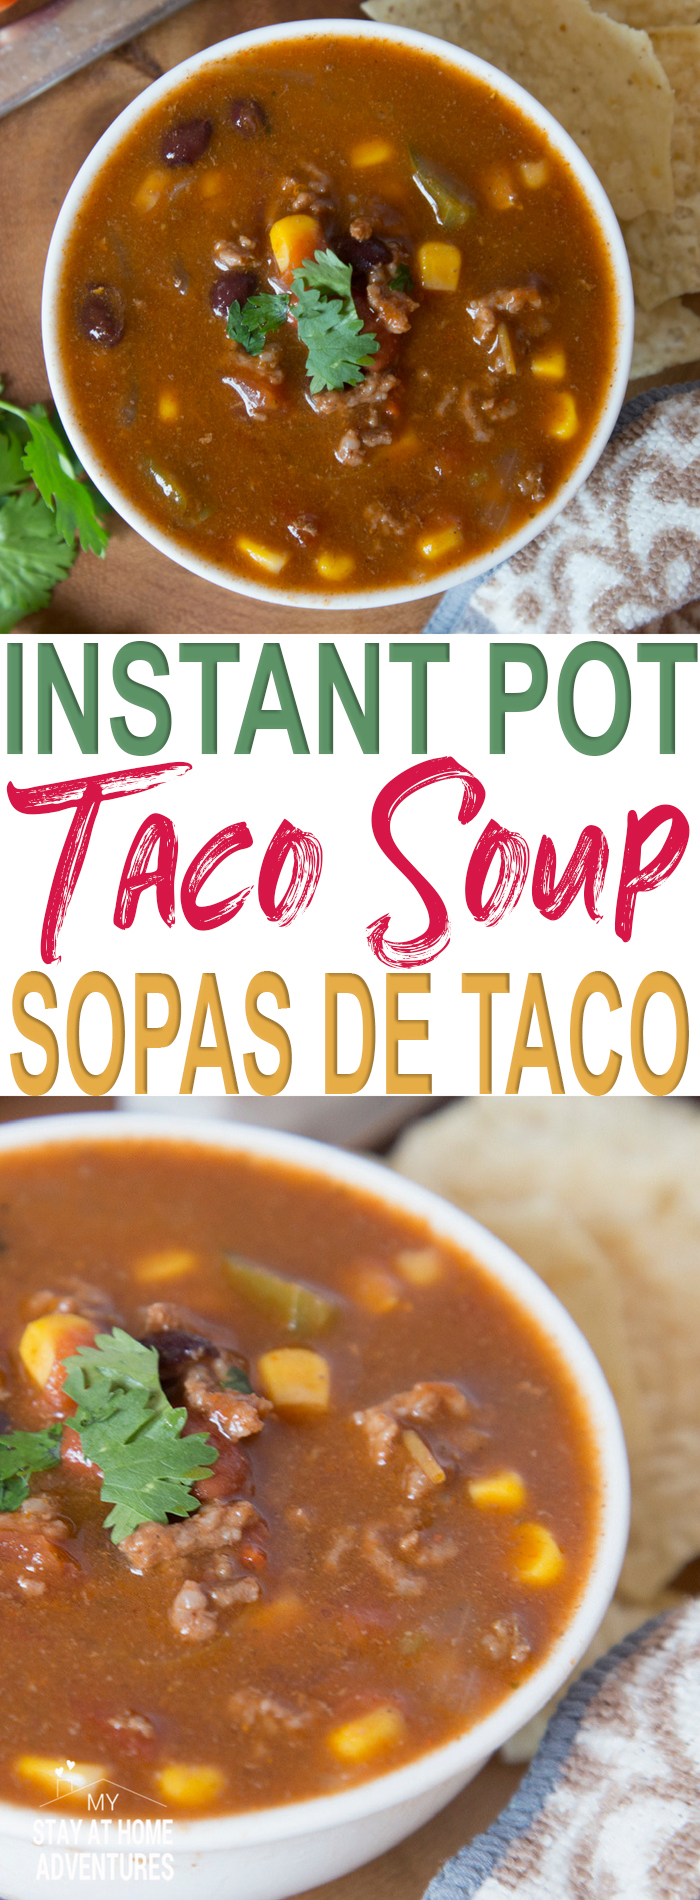 Learn how to make this delicious Instant Pot Taco Soup recipe you are so going to love. This Sopas de Tacos is simple and so flavorful you have to try it.